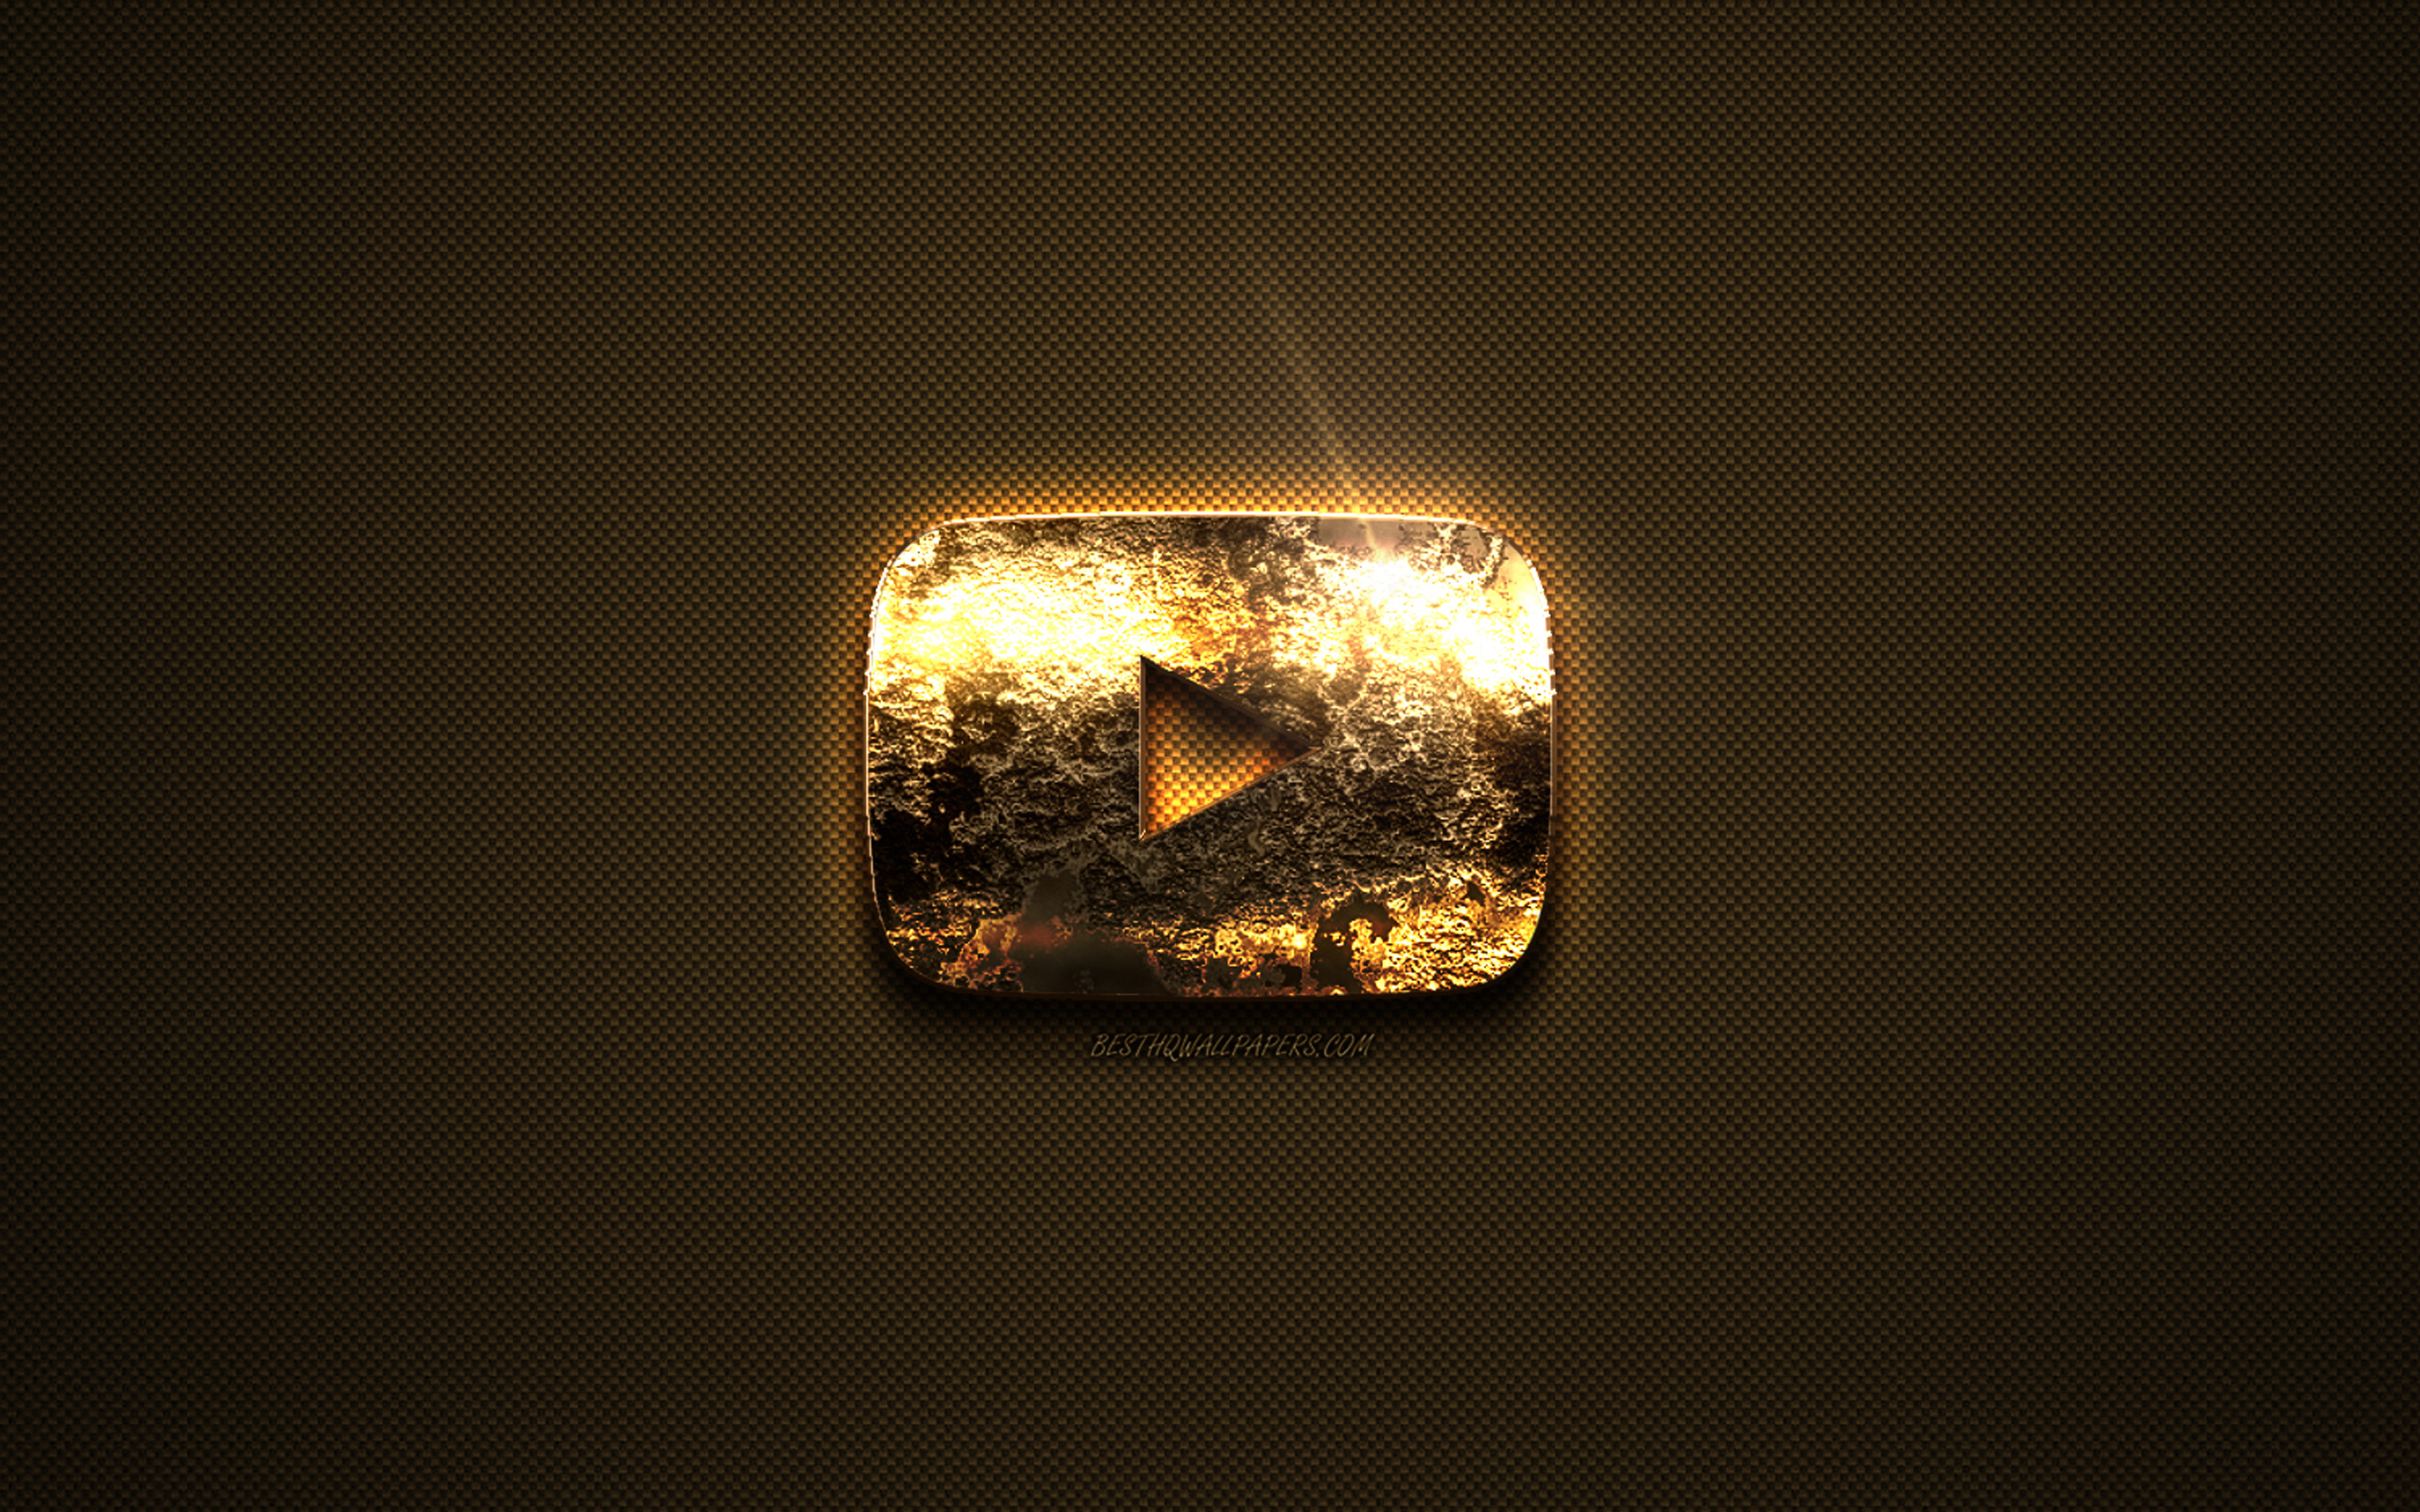 YouTube gold logo, creative art, gold texture, brown carbon fiber texture, YouTube gold emblem, YouTube